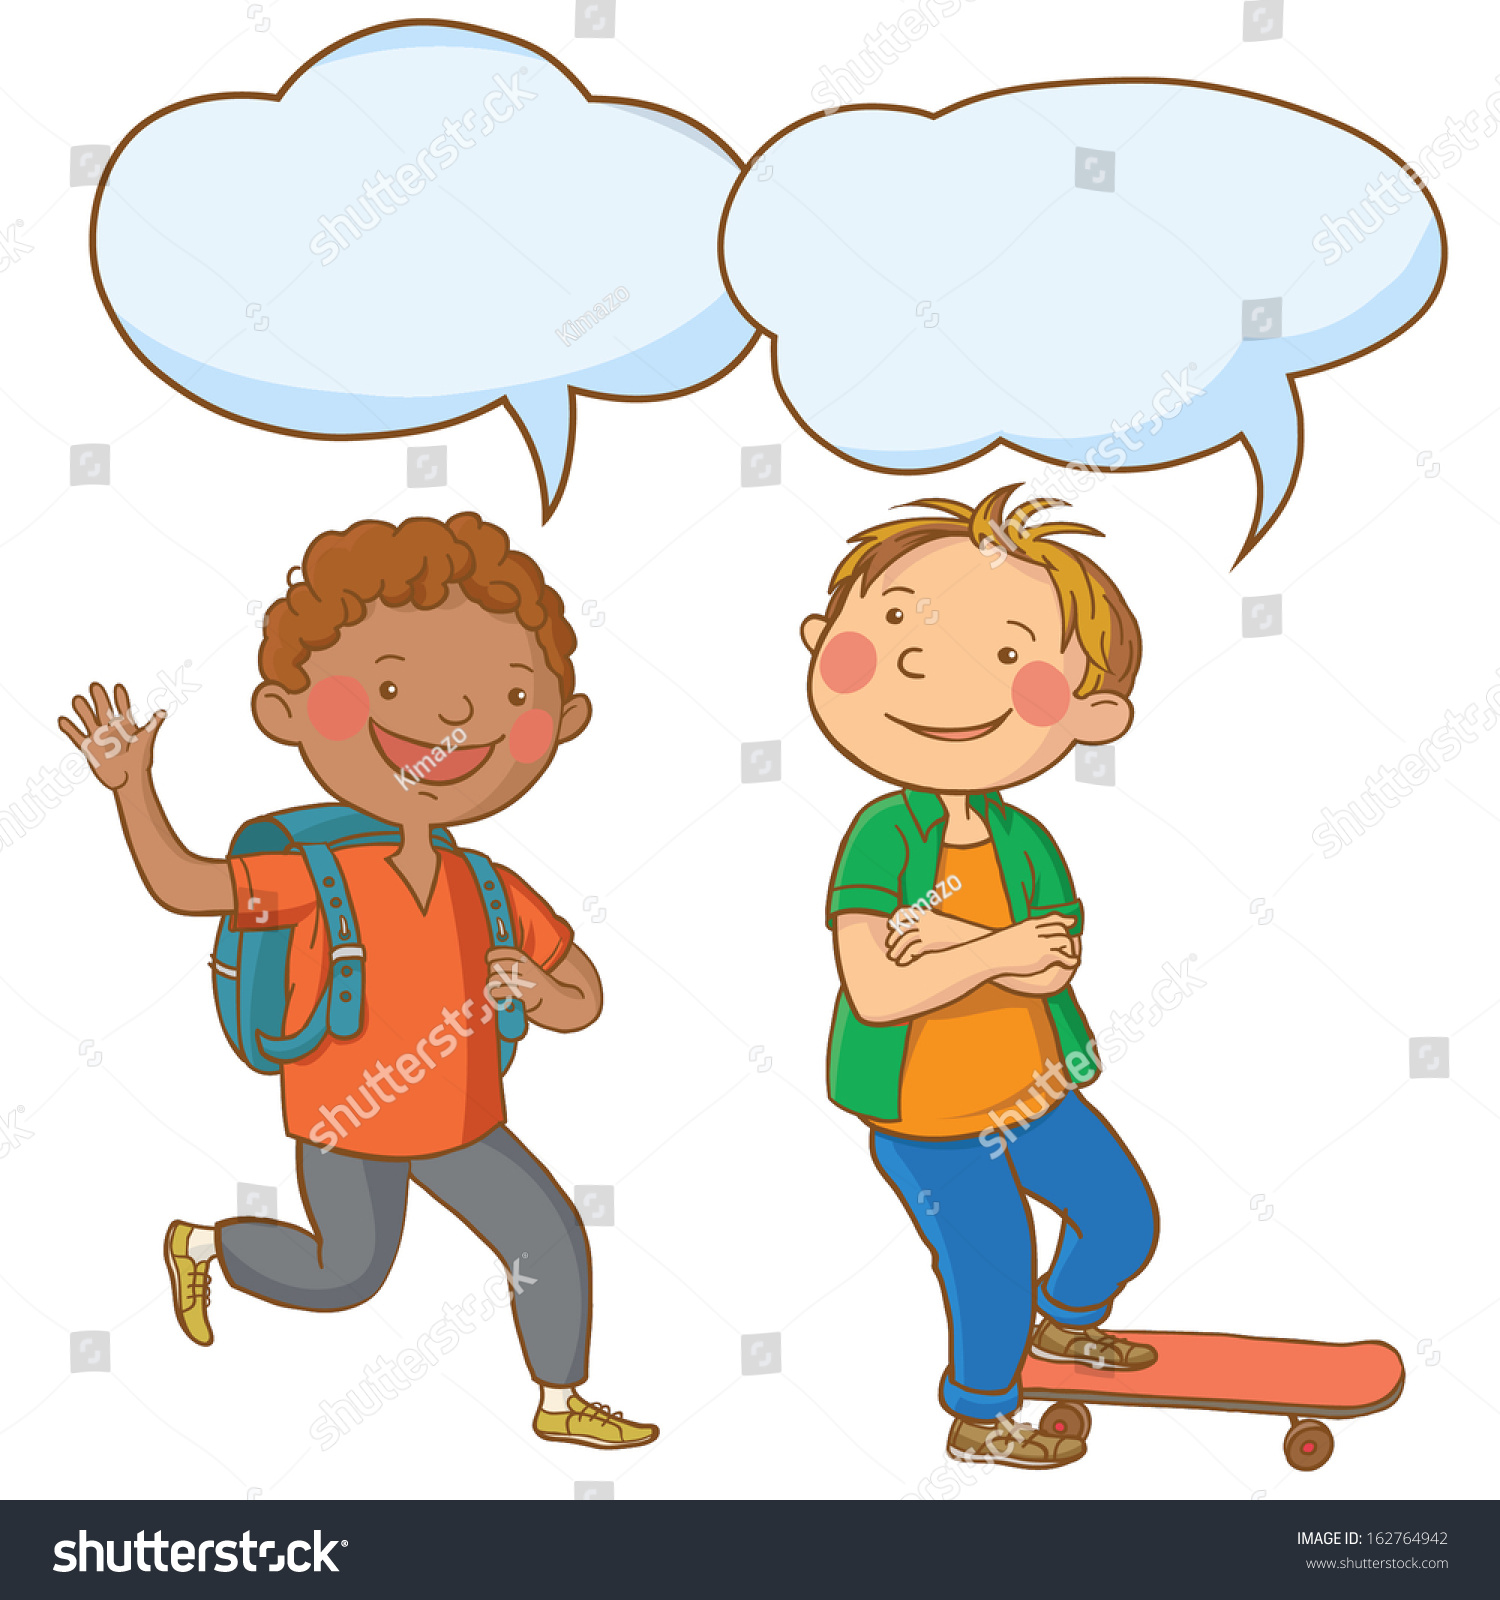 two boys talking together speech bubble stock vector